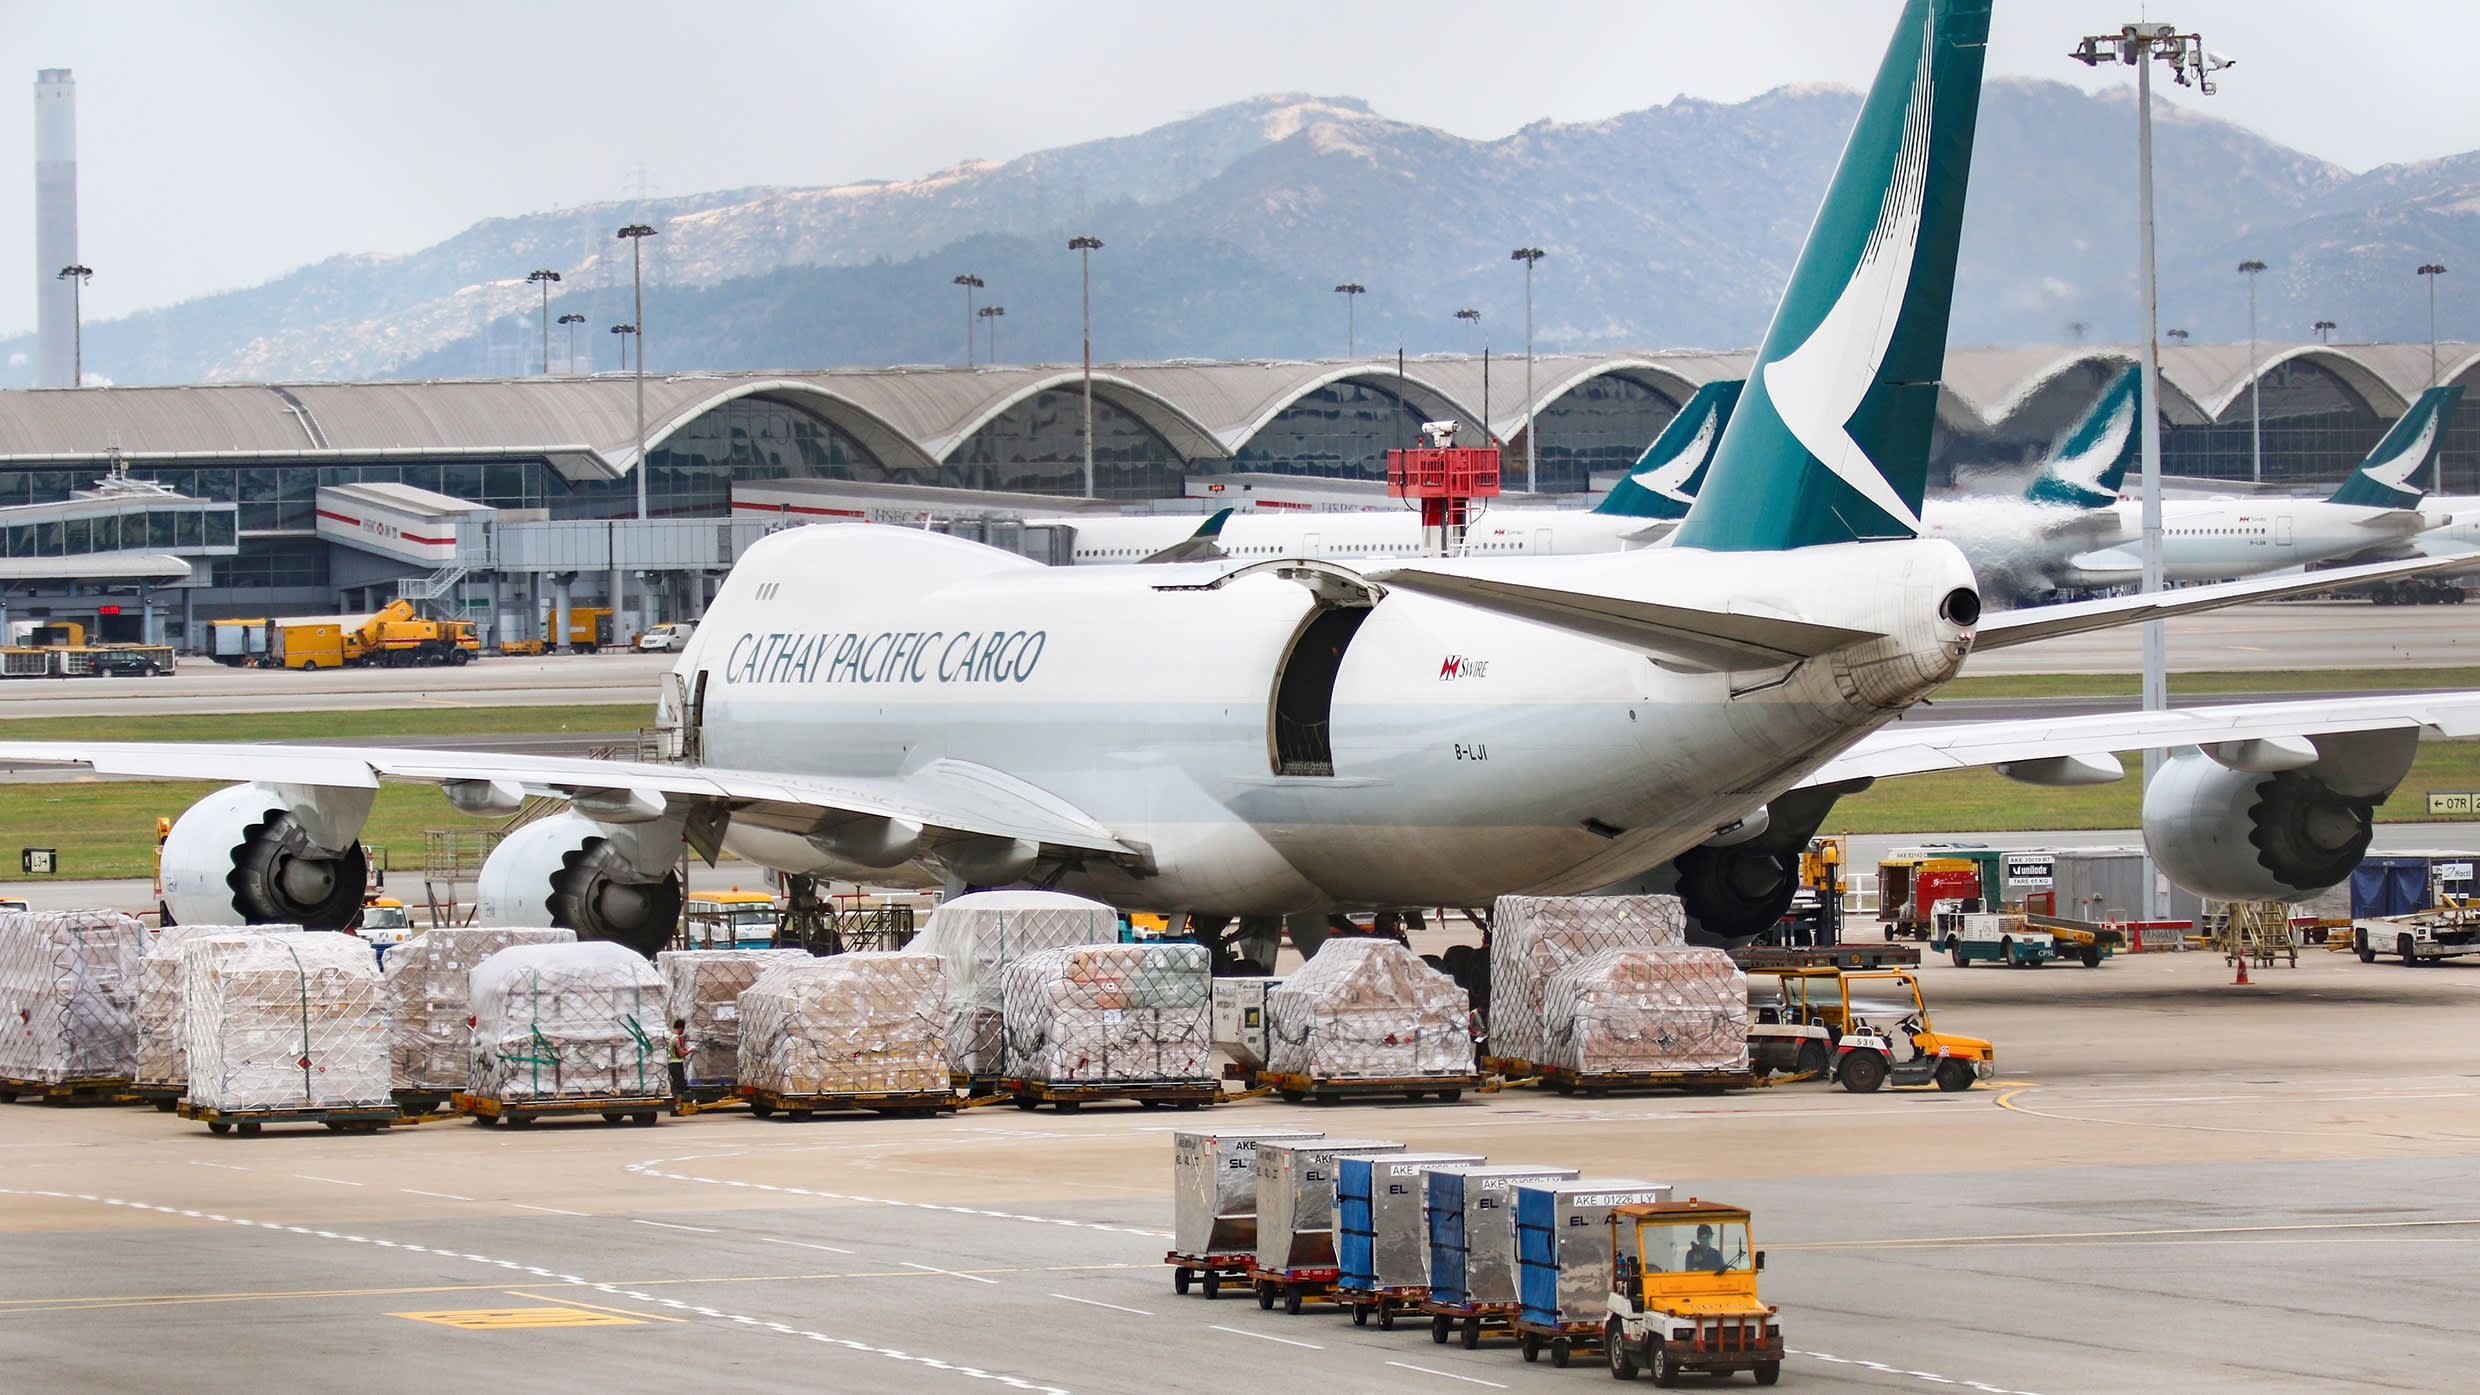 Asian Airlines Flock To Cargo For Reprieve From Coronavirus Havoc Nikkei Asian Review